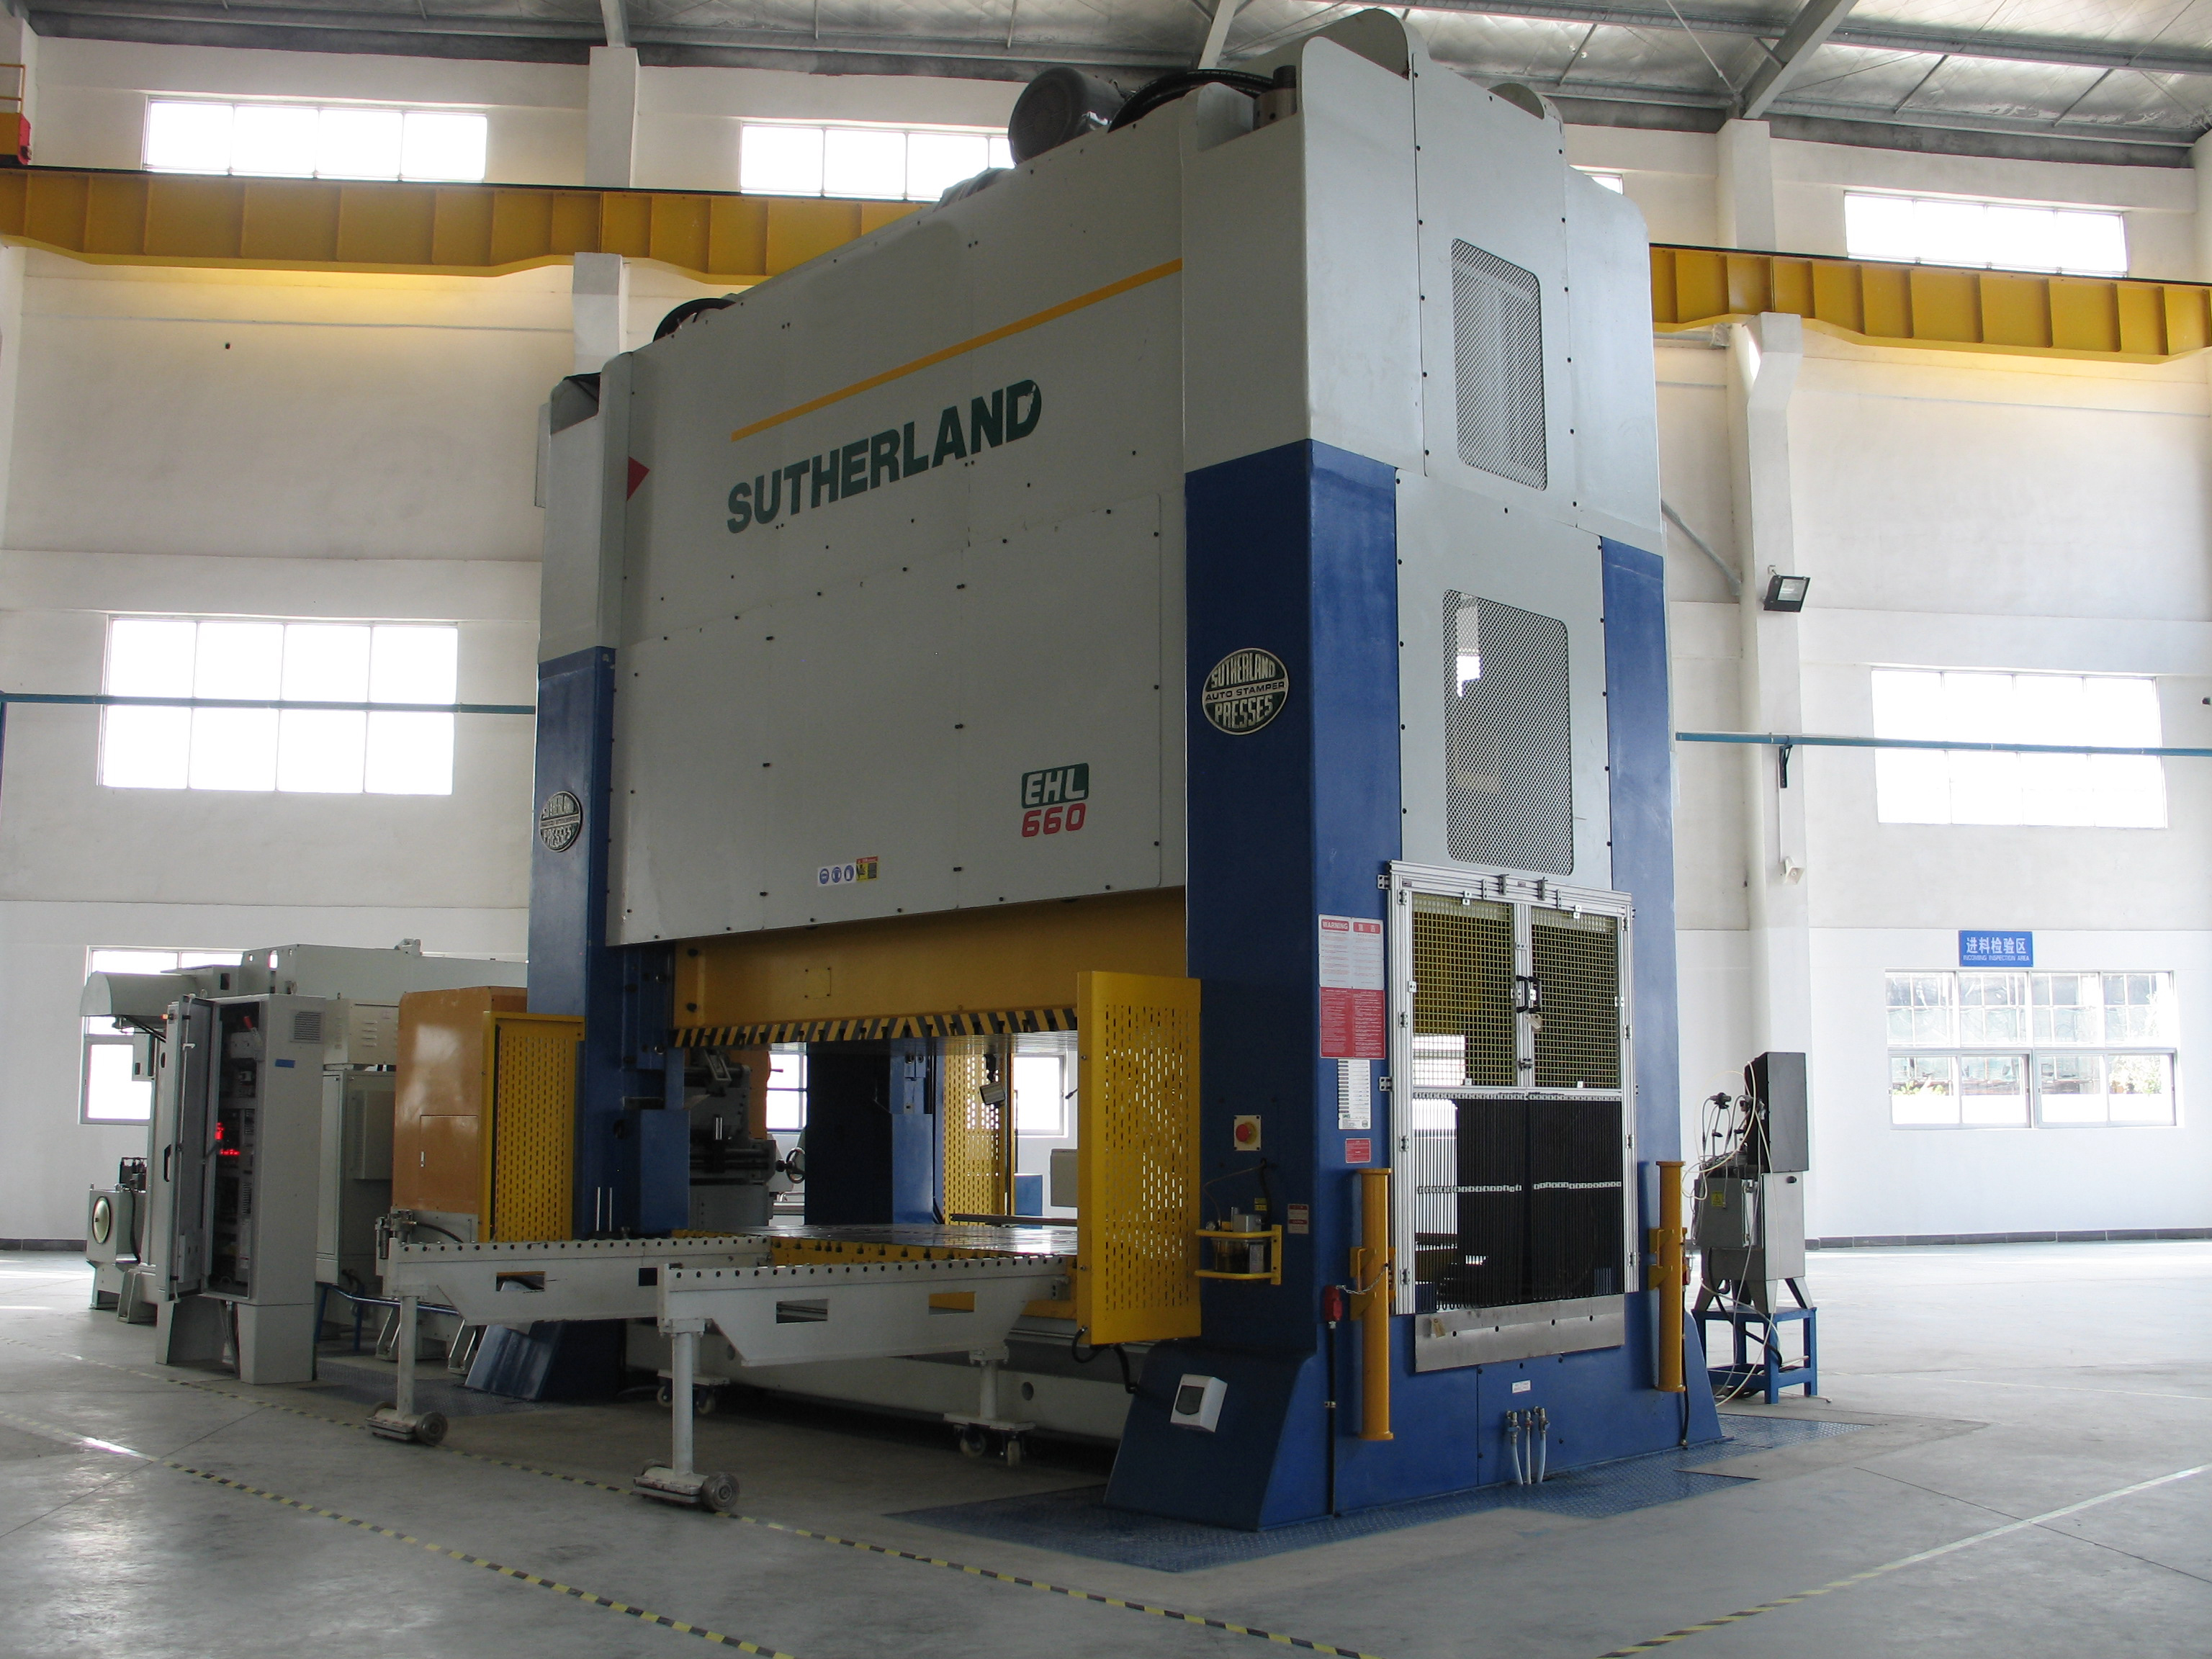 Sutherland EHW Double Point Straight Side Mechanical Stamping Press Machine 660 Tons